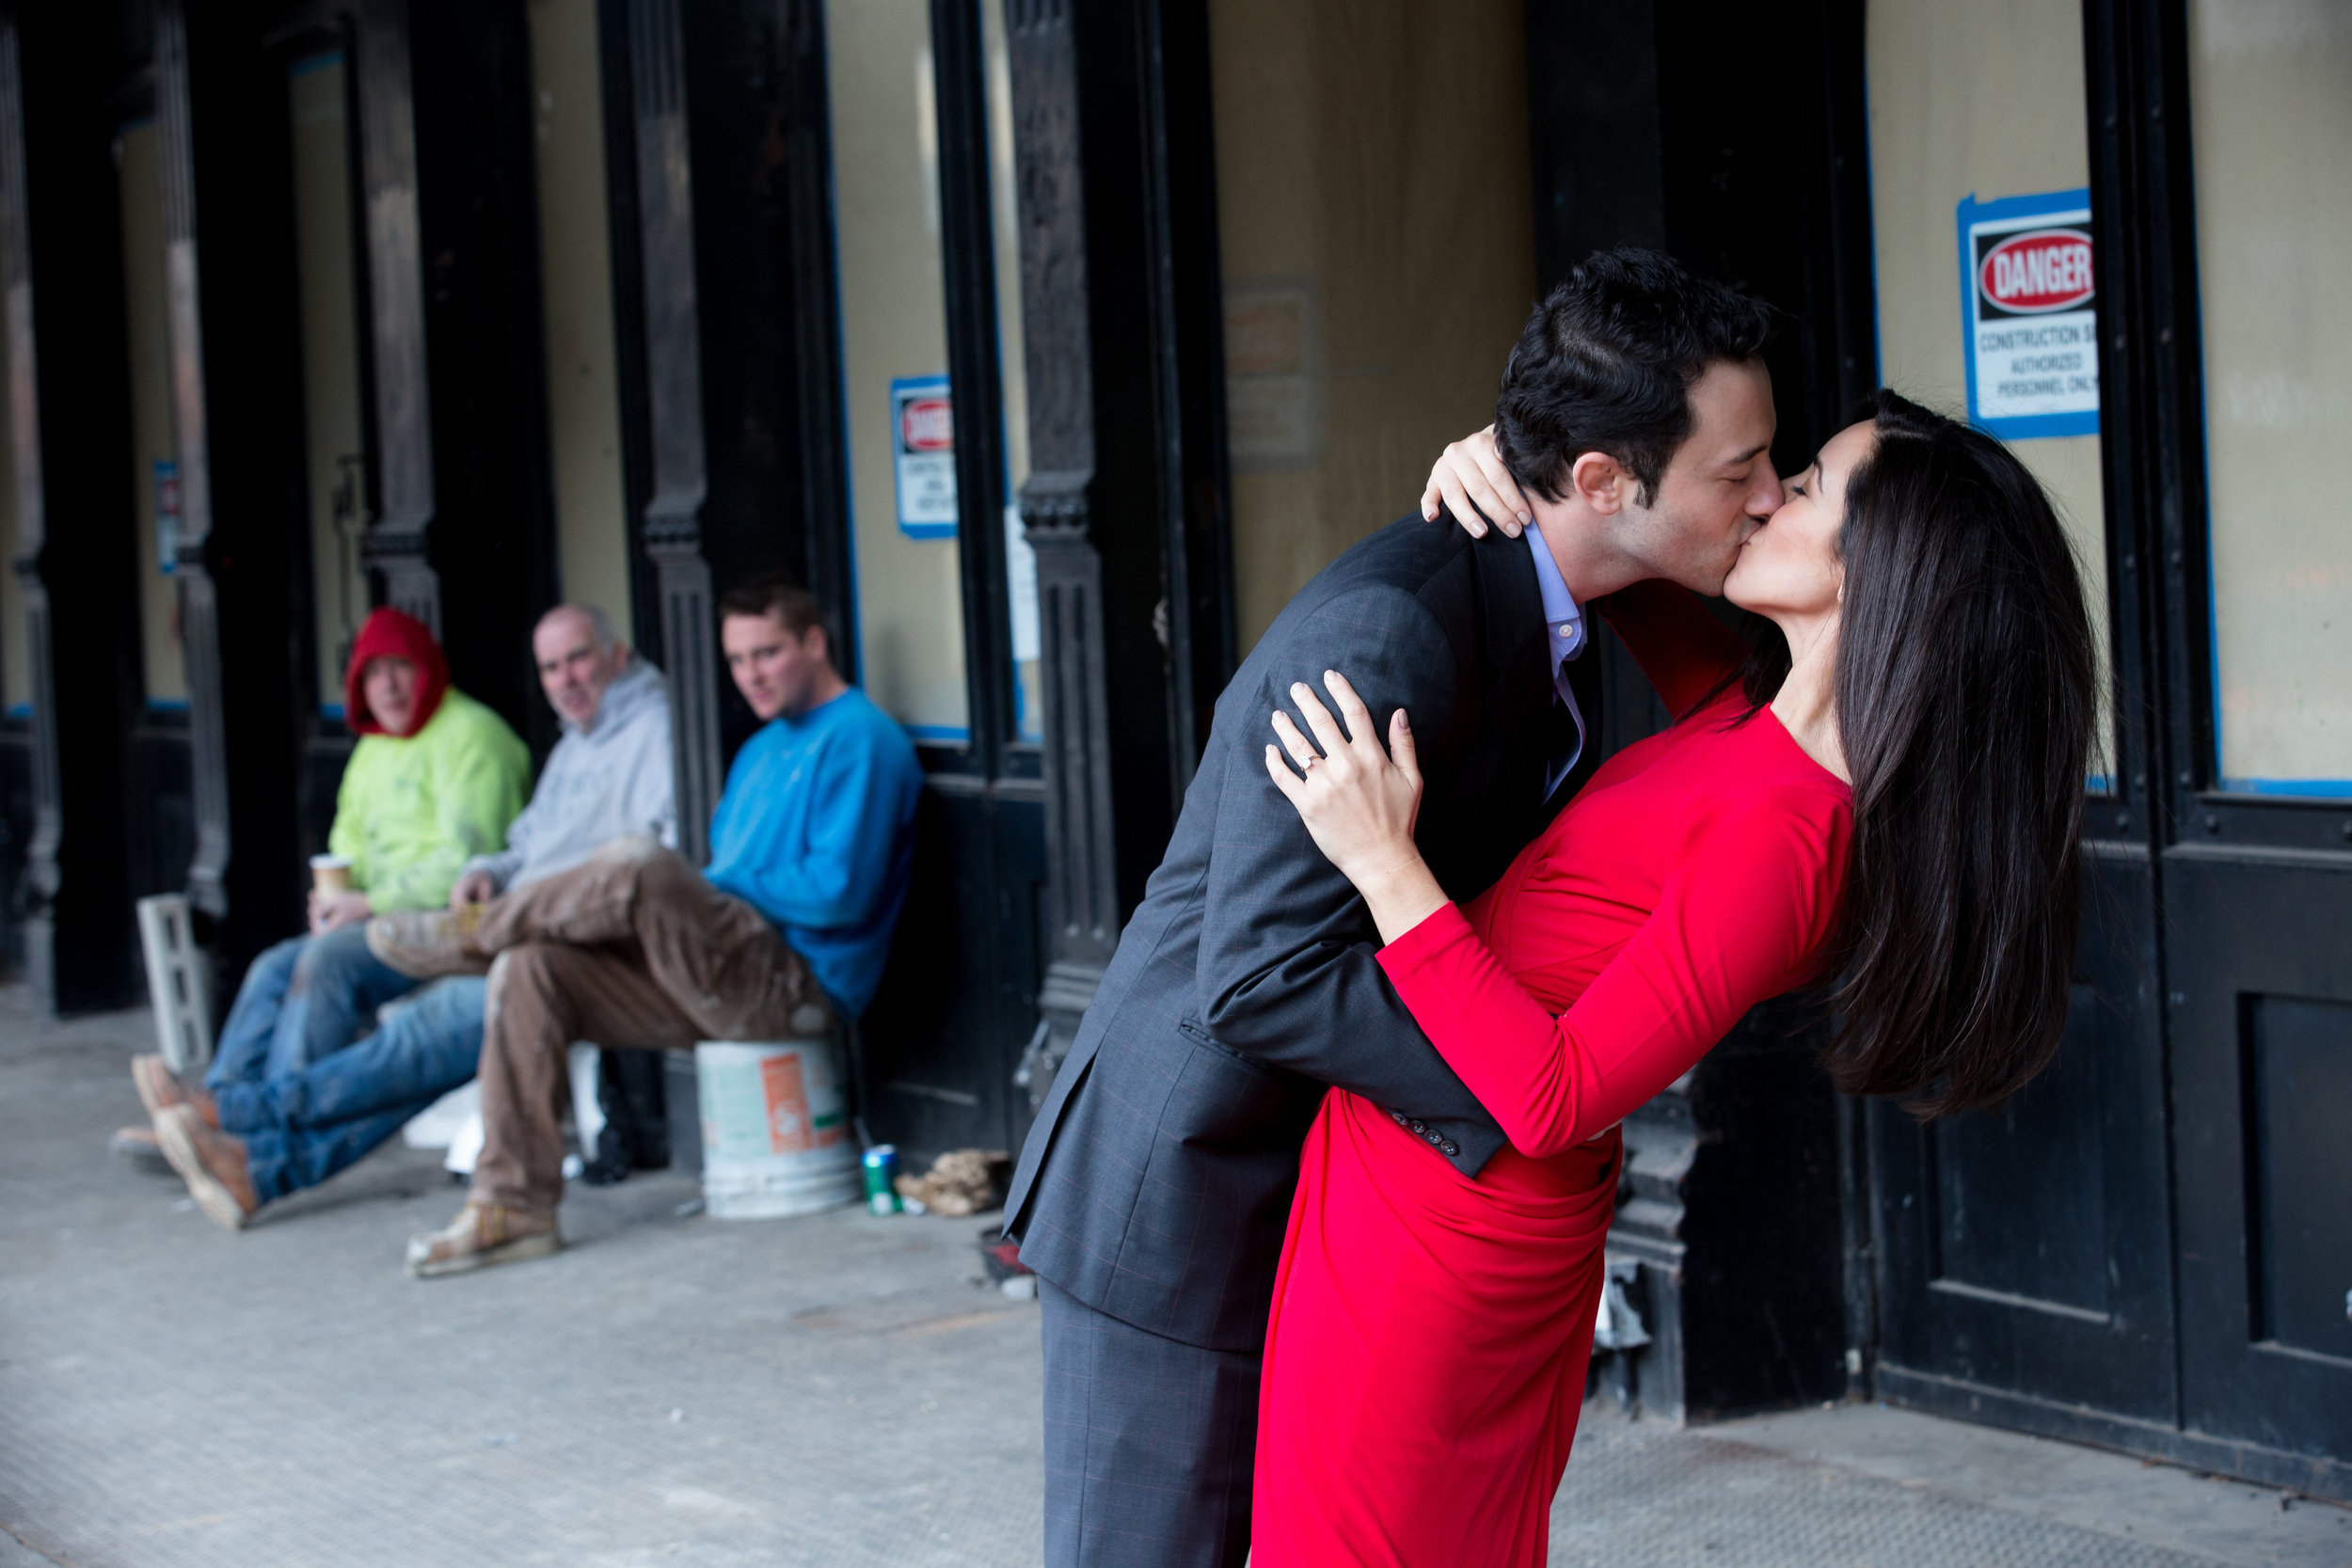 engagement-shoot-meat-packing-district-nyc-217.jpg